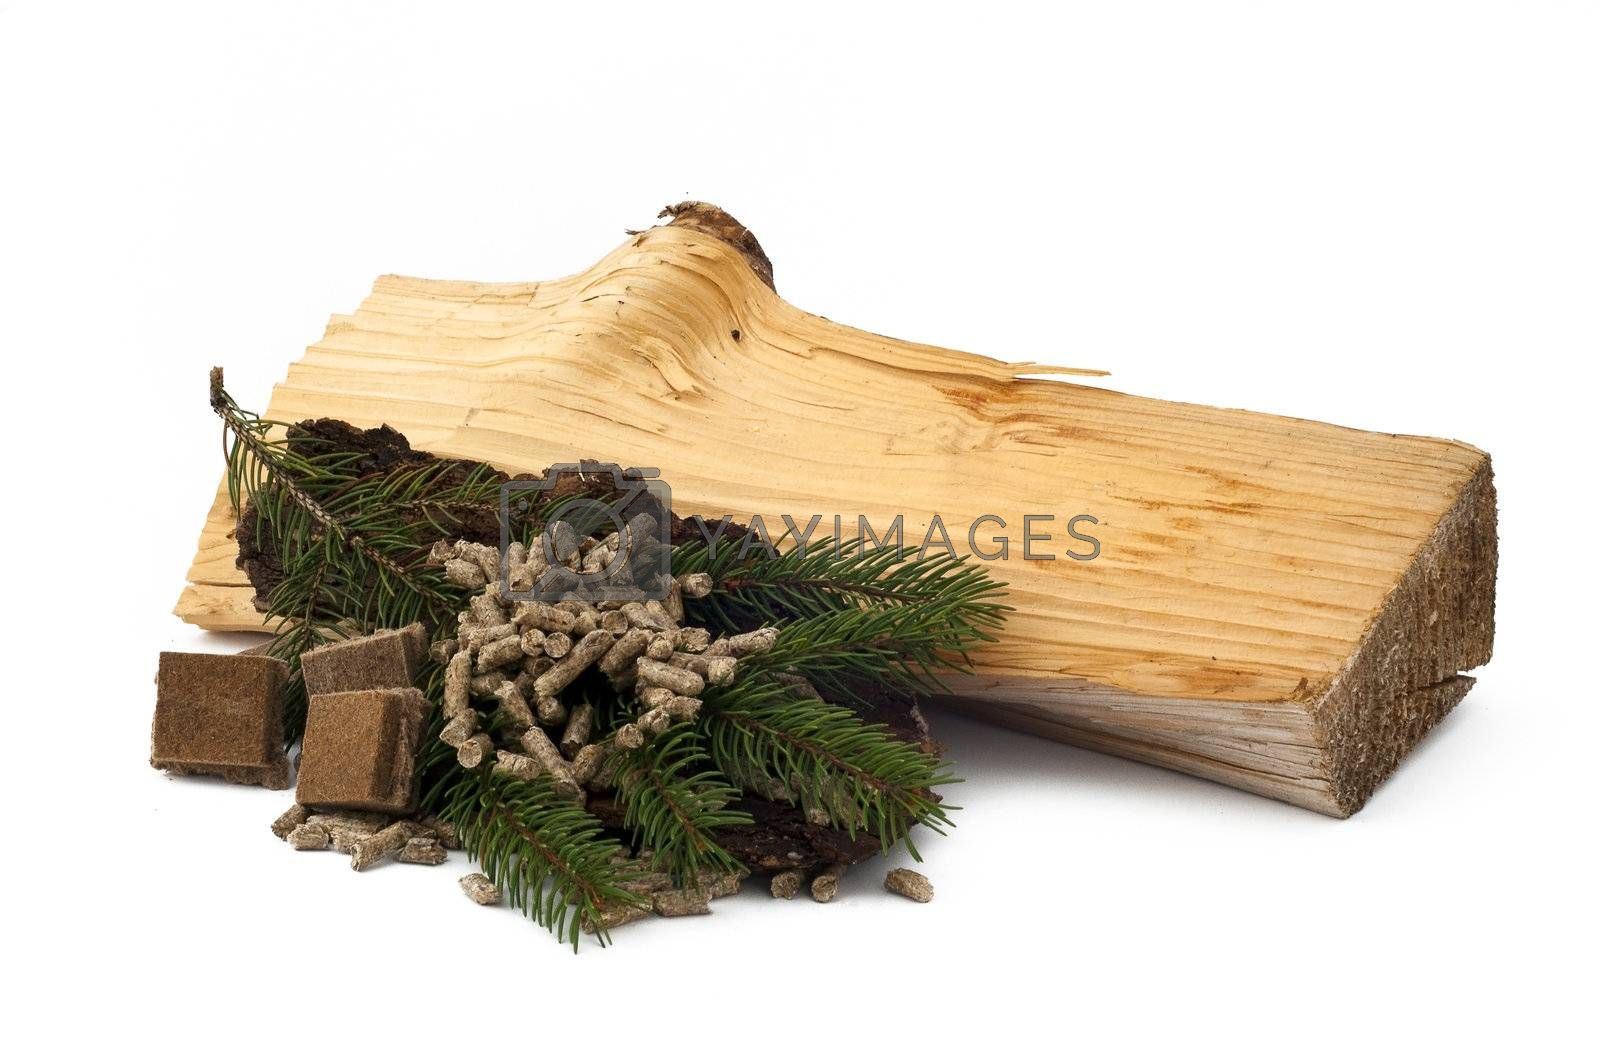 ecological materials for heating on white background